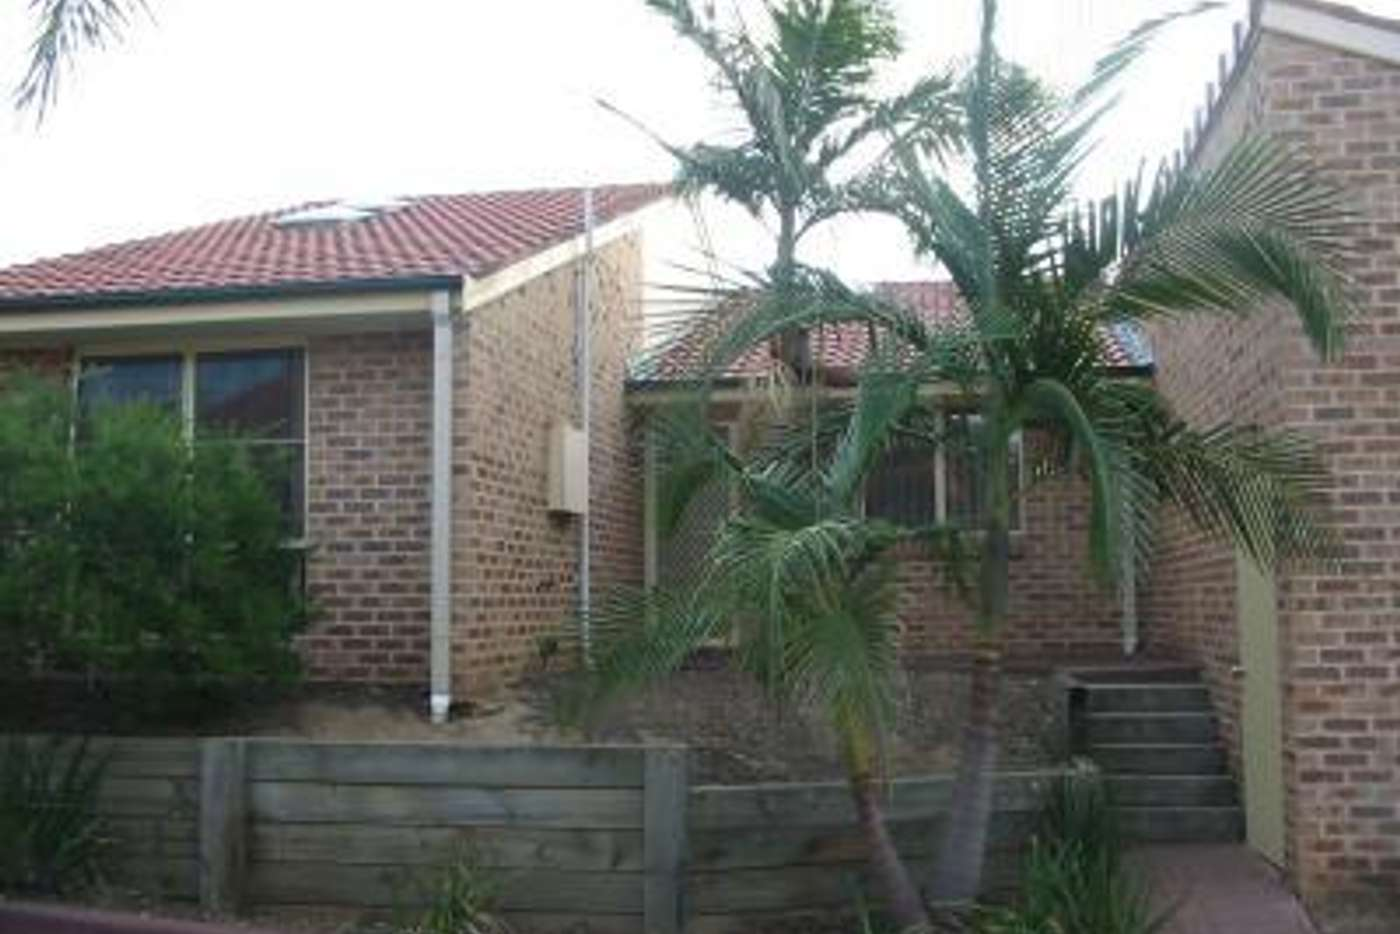 Main view of Homely villa listing, 7/387 Wentworth Avenue, Toongabbie NSW 2146